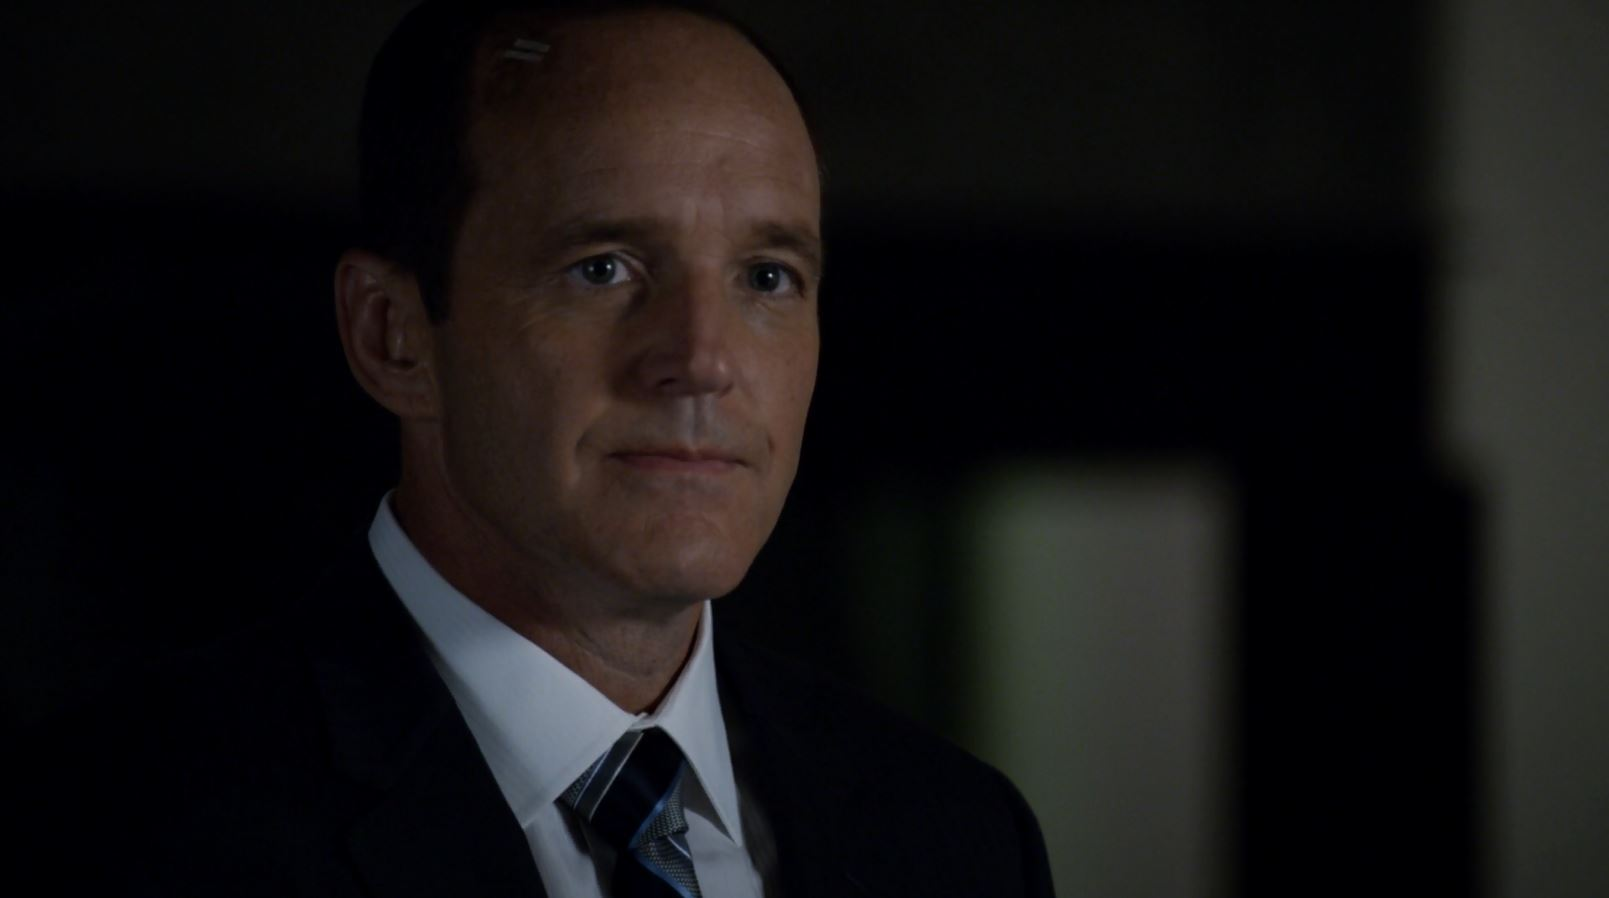 Director Phil Coulson played by Clark Gregg - Agents of SHIELD The Writing on the Wall Review